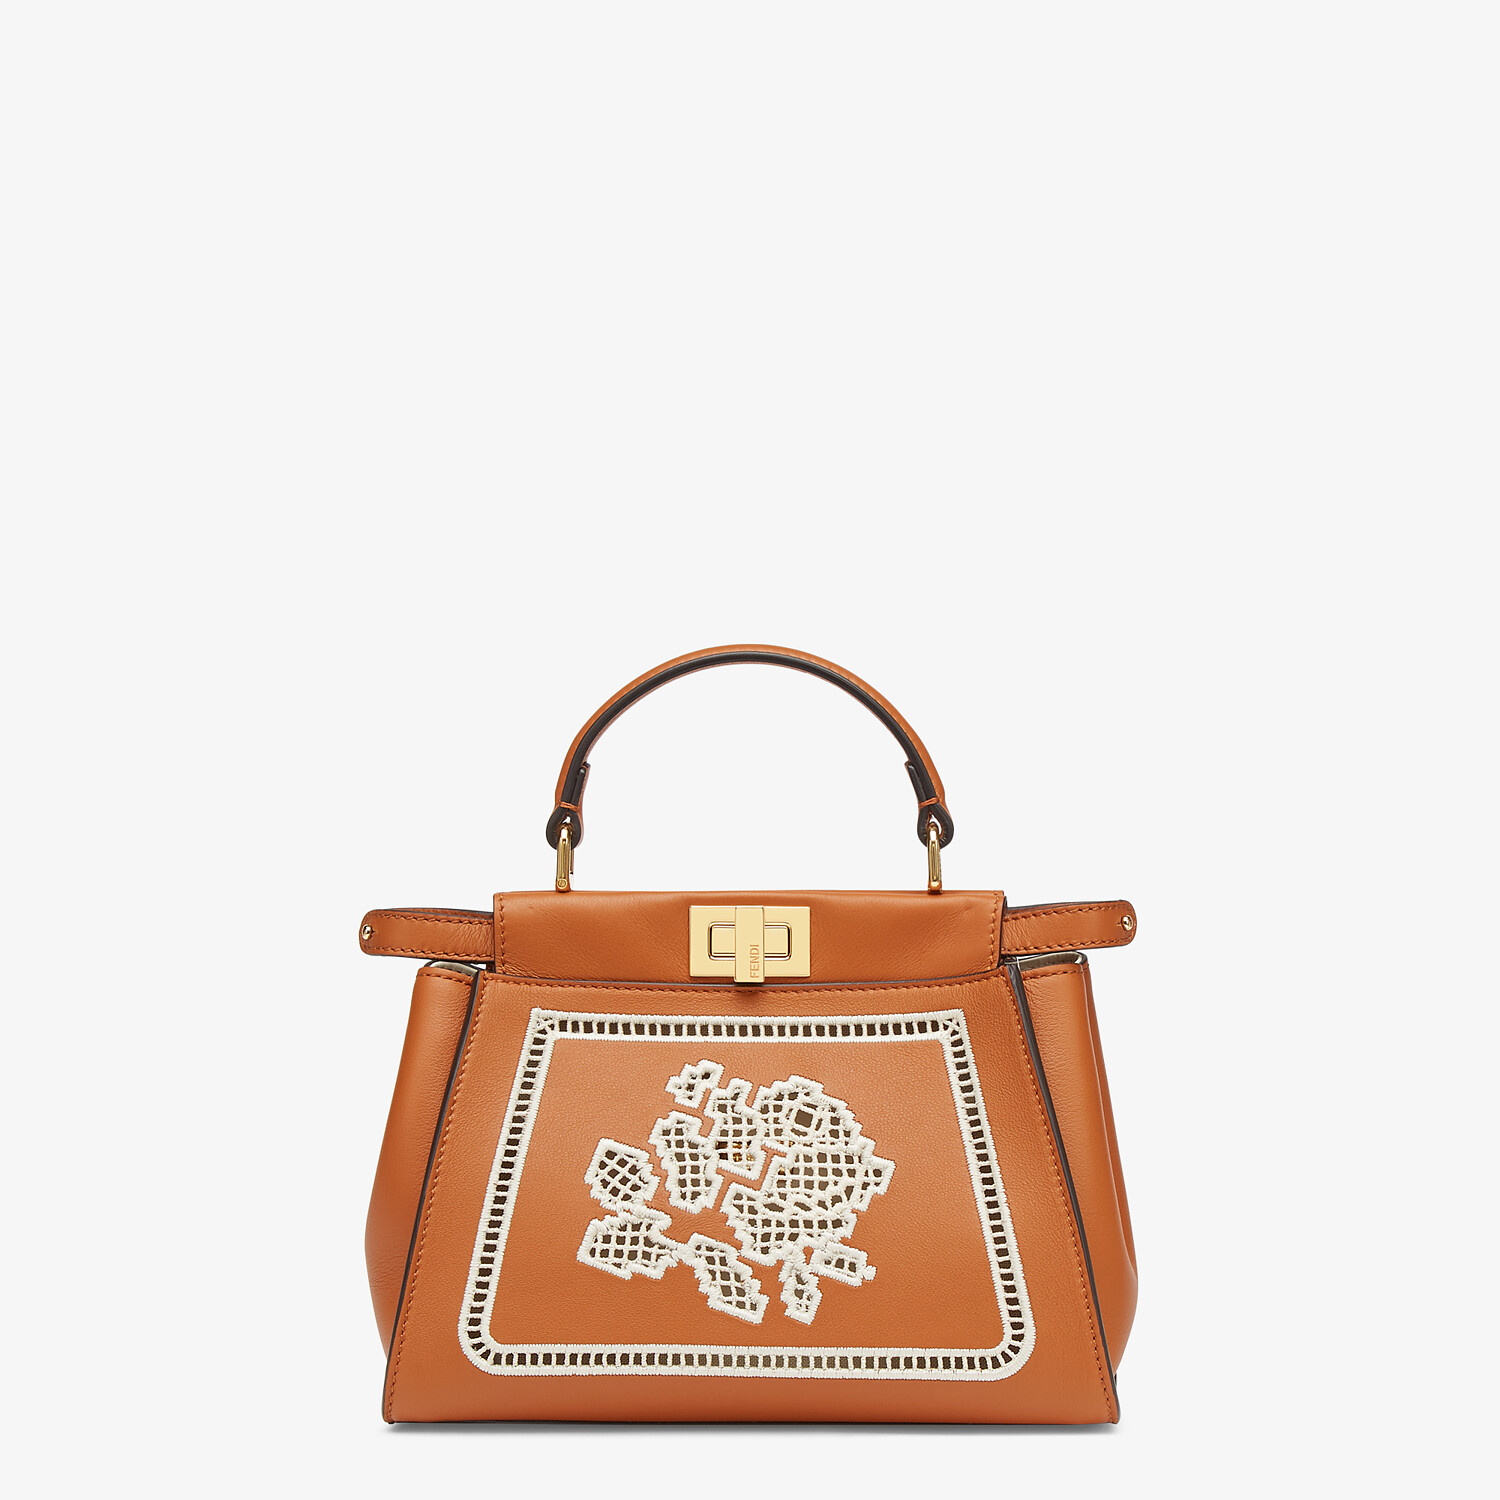 FENDI PEEKABOO ICONIC MINI - Embroidered brown leather bag - view 1 detail